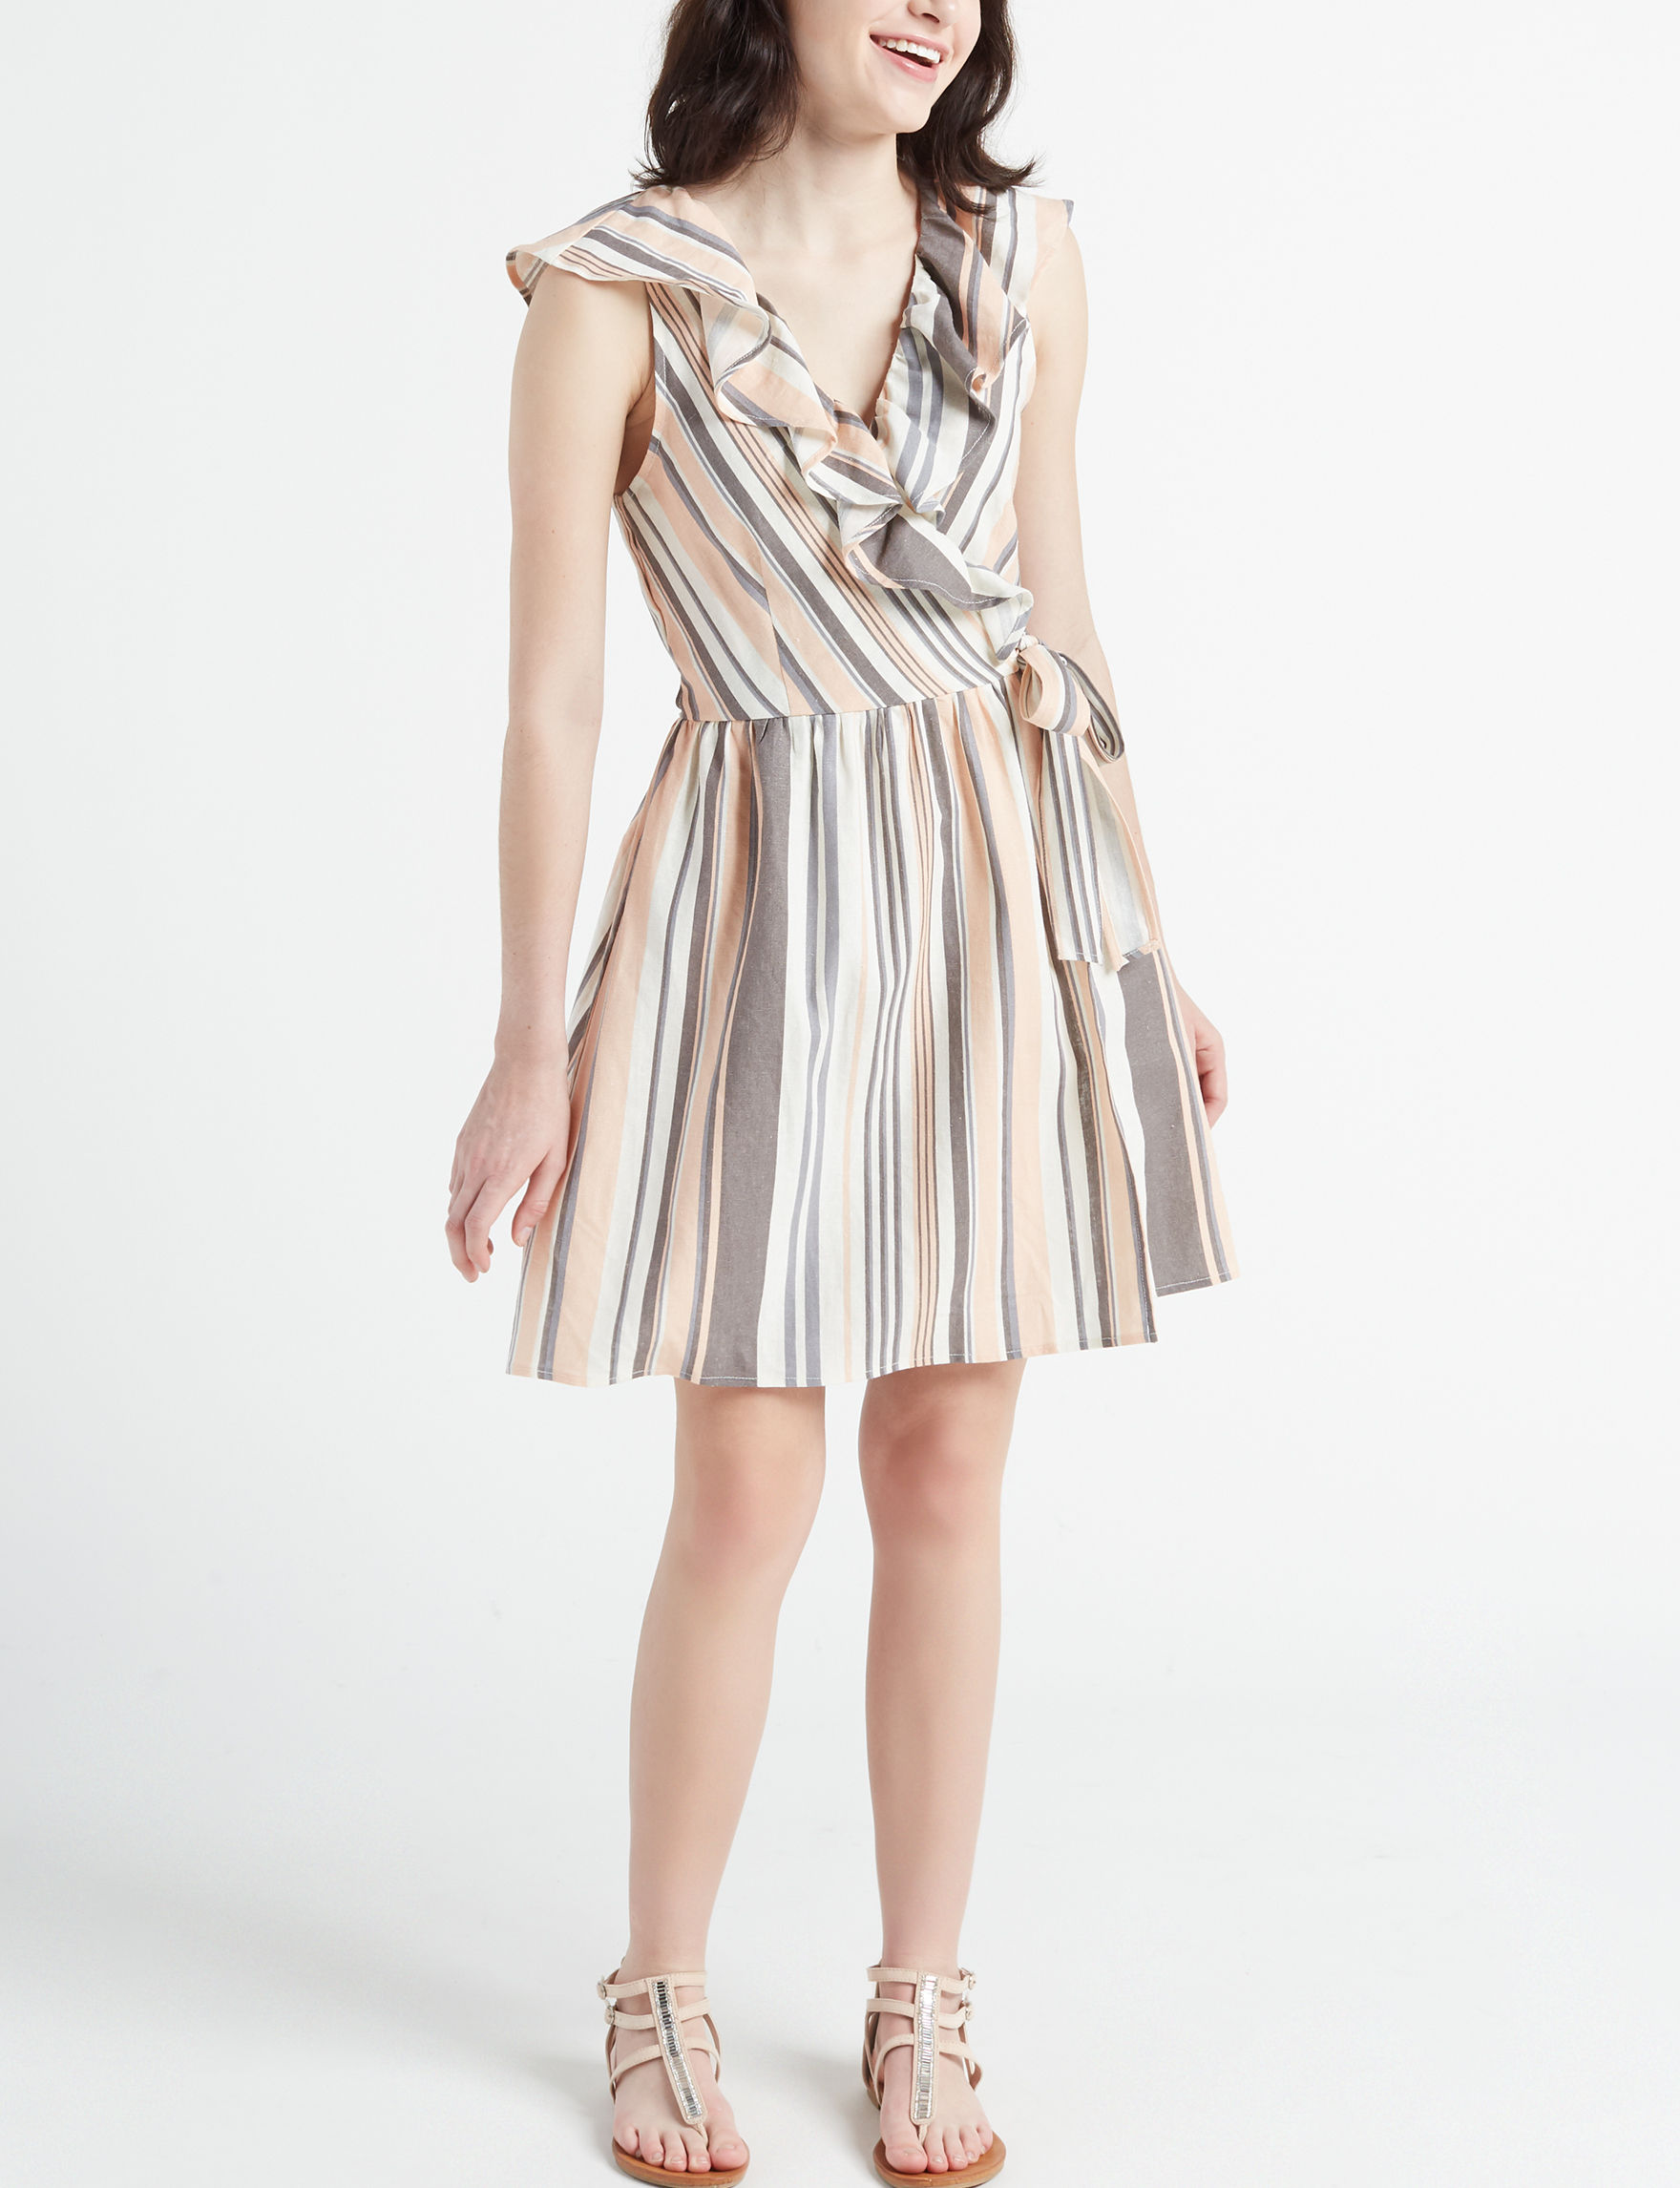 BeBop Charcoal Everyday & Casual Fit & Flare Dresses